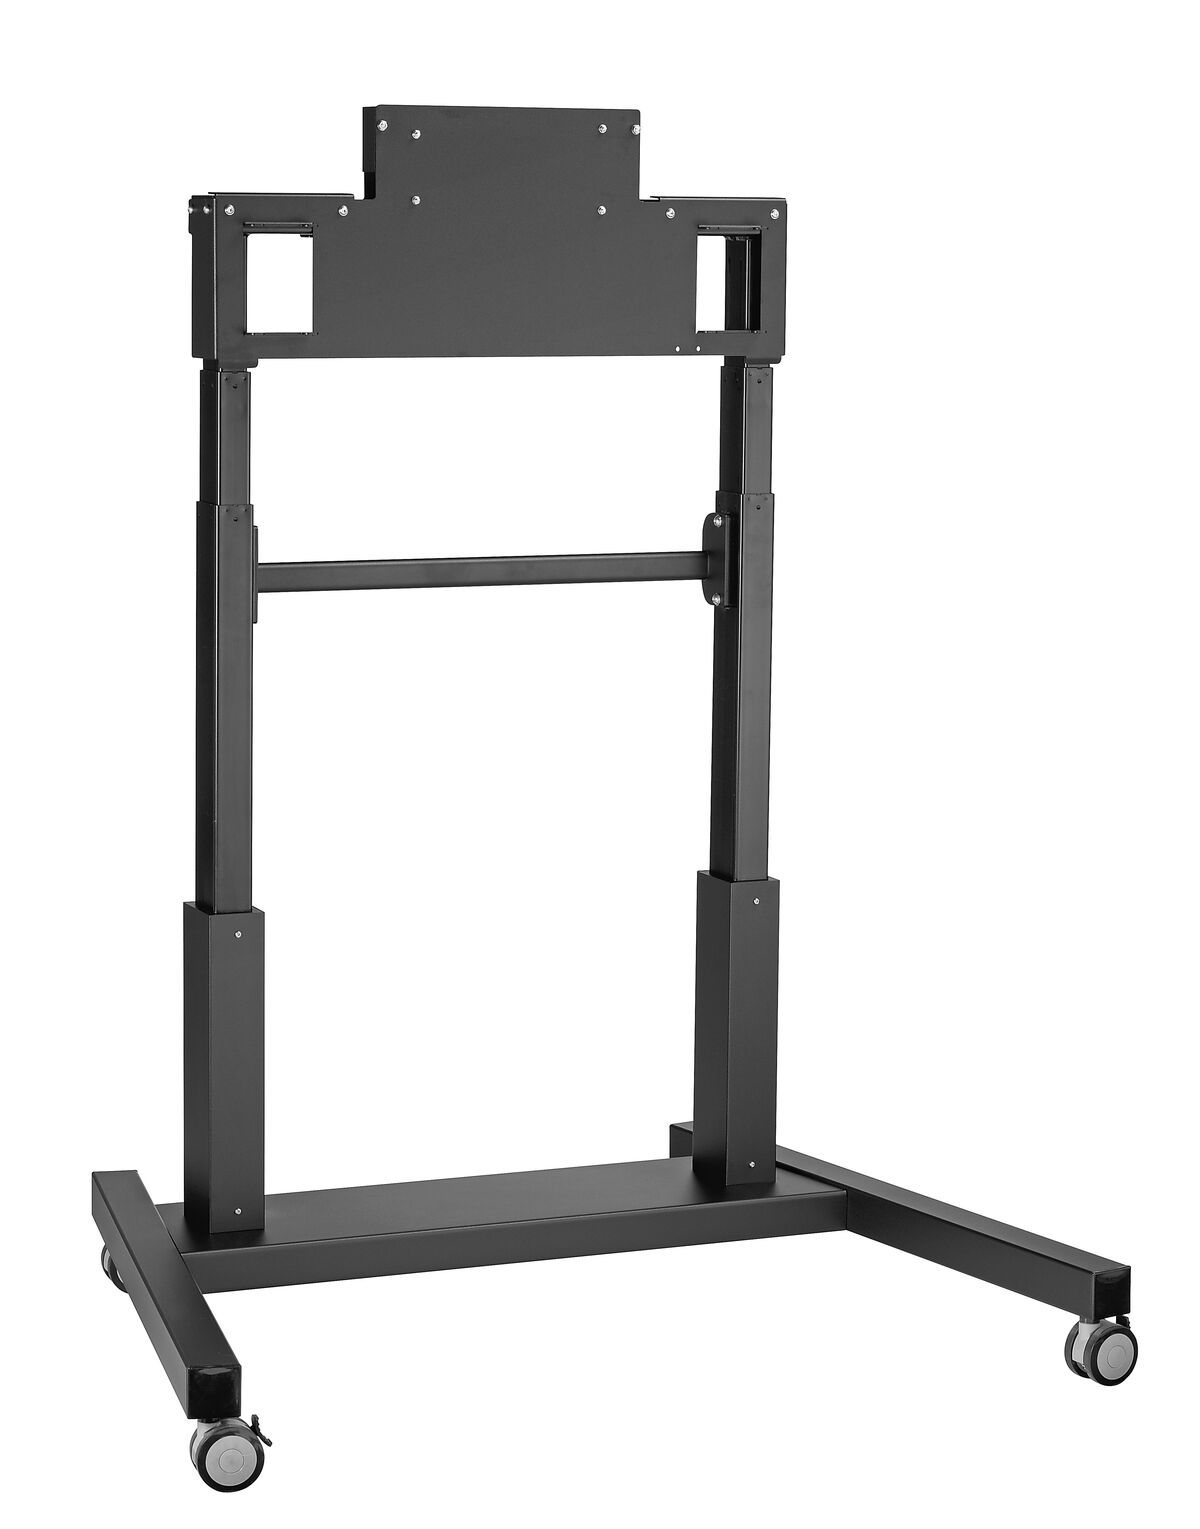 Vogel's PFTE 7112 Display trolley motorized - Product